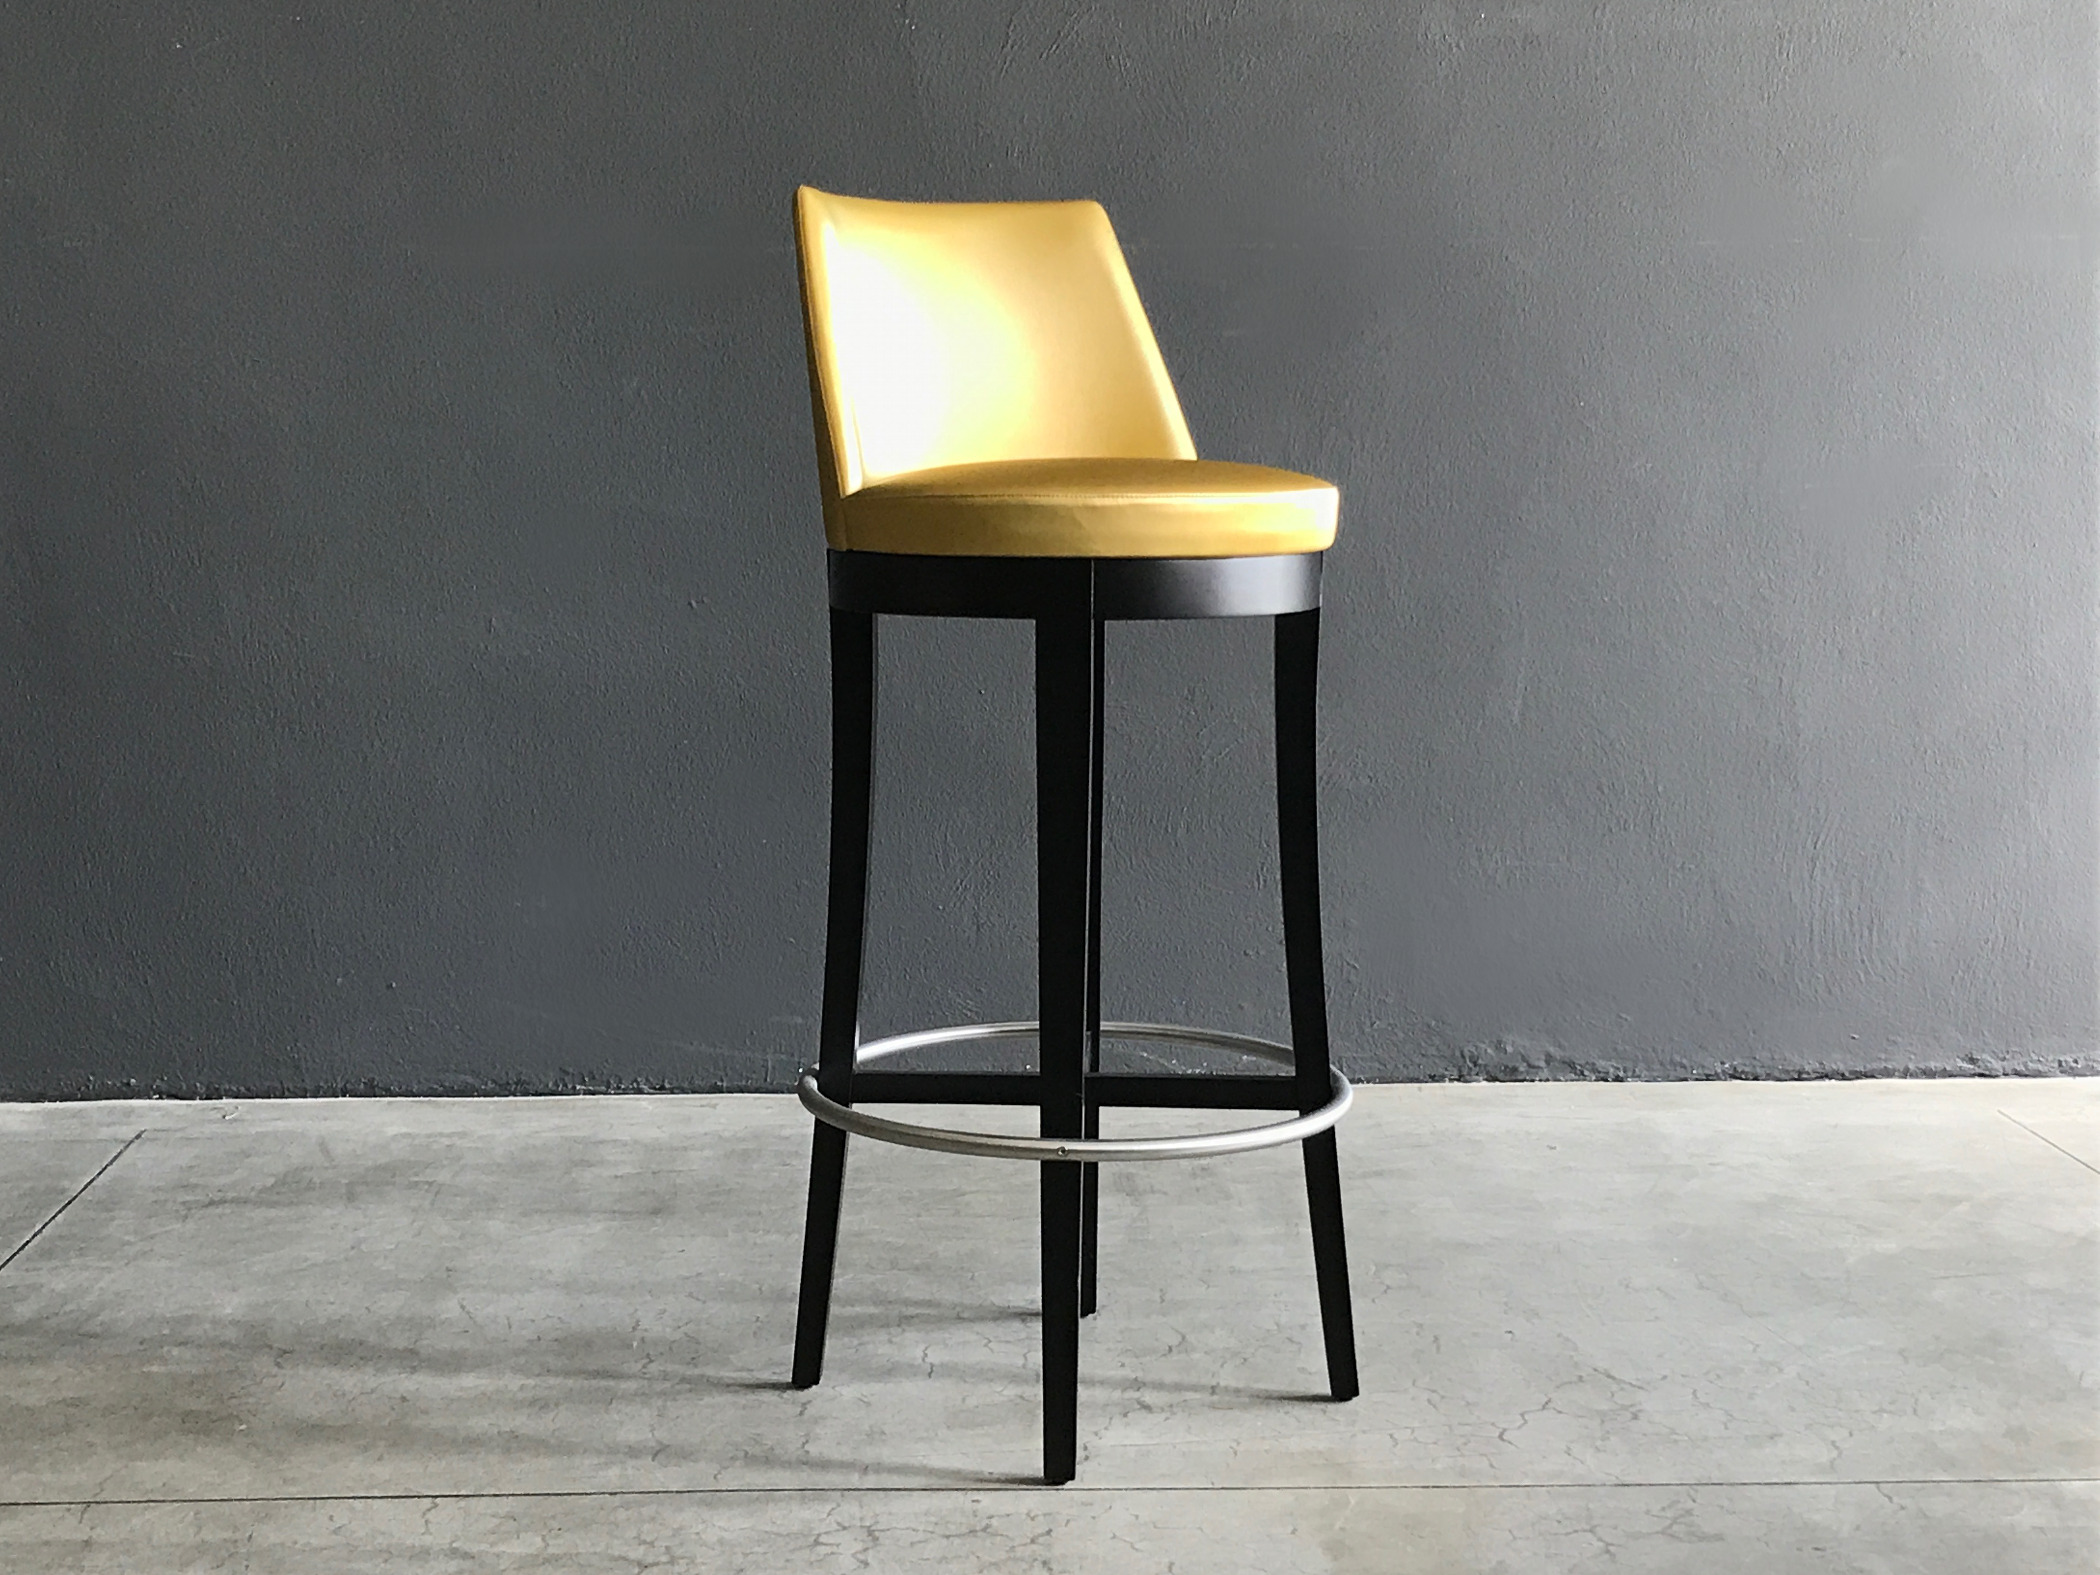 Stool contract artificial leather gold New Moscow